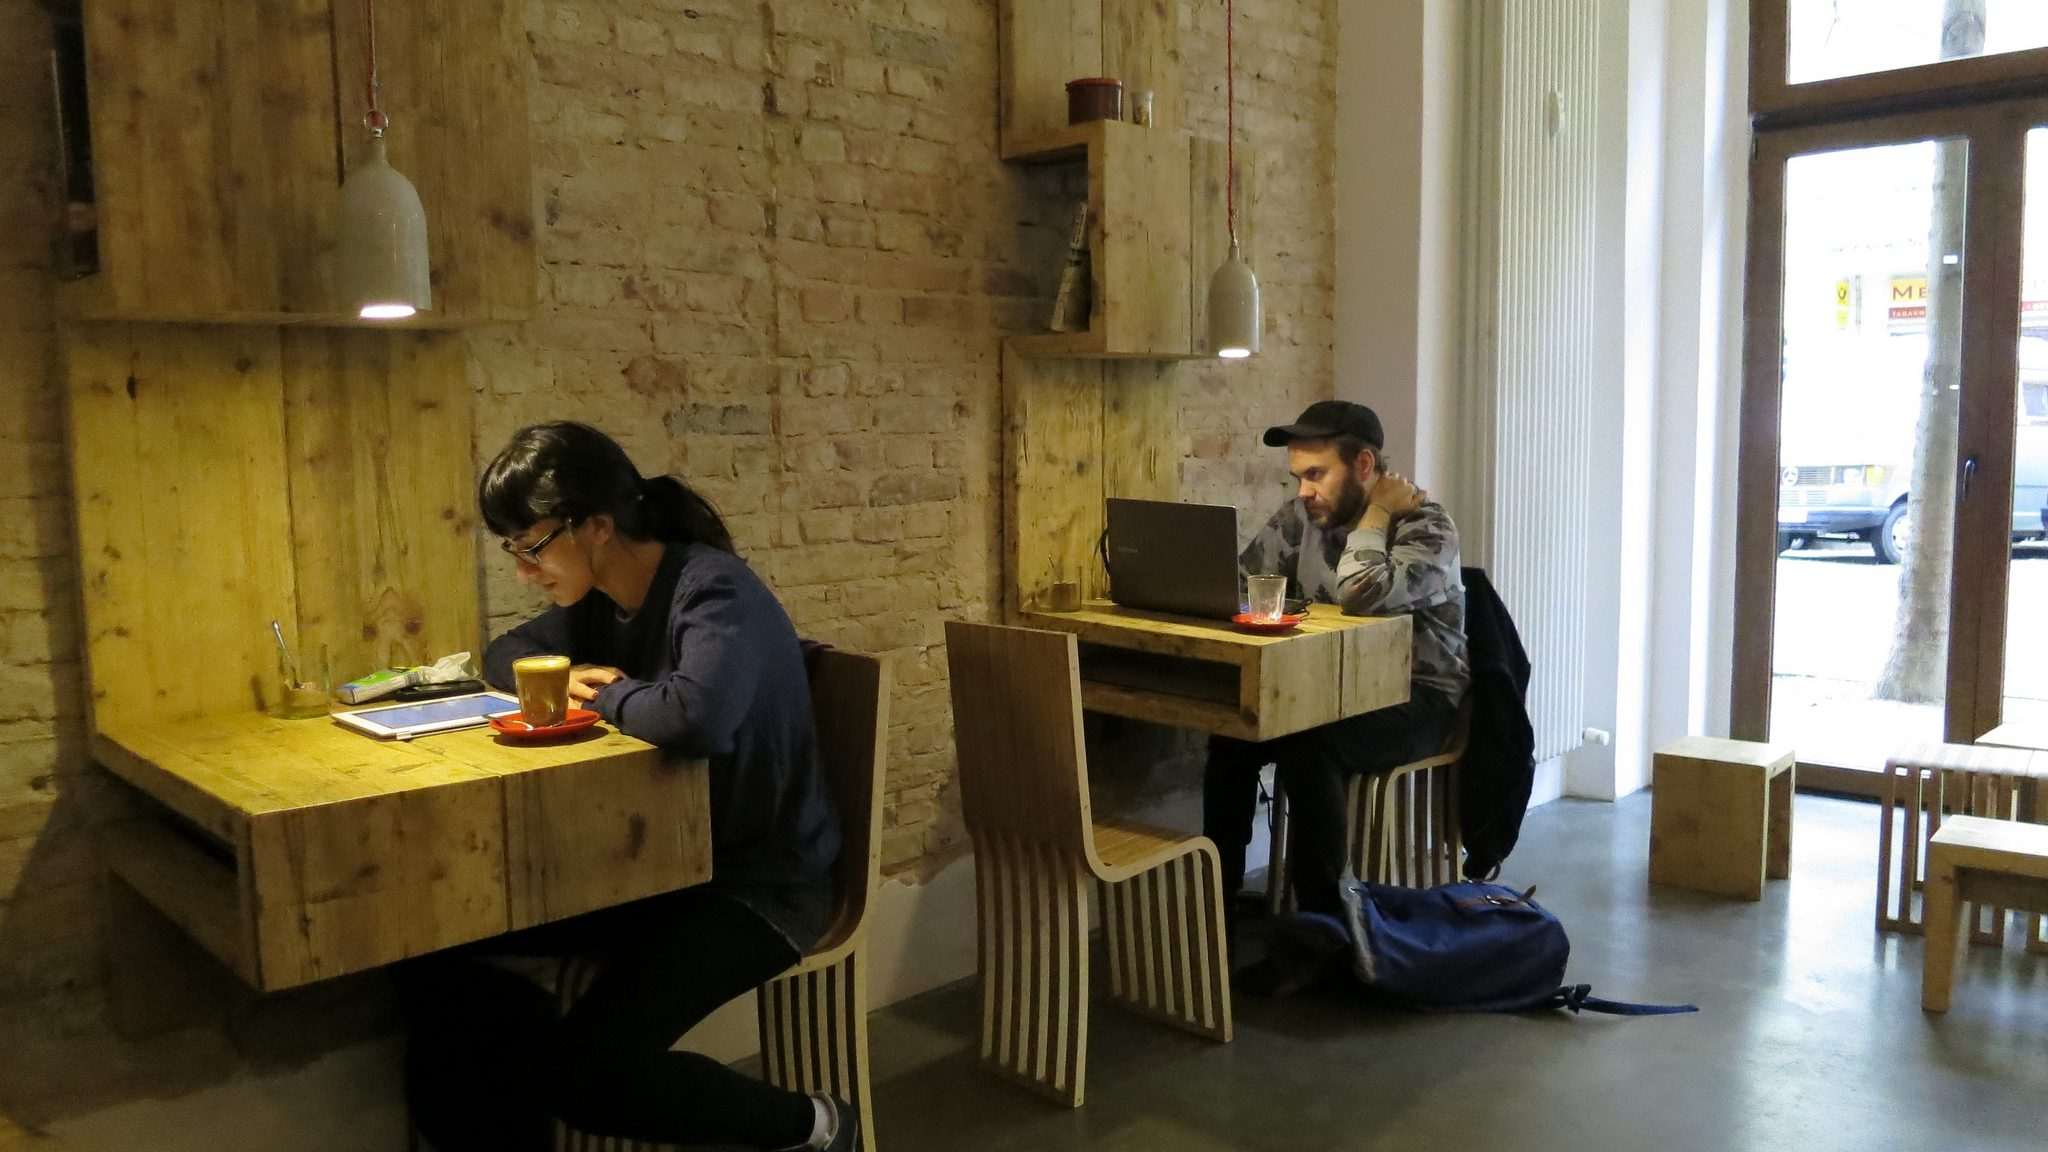 People working on laptops in a cafe.